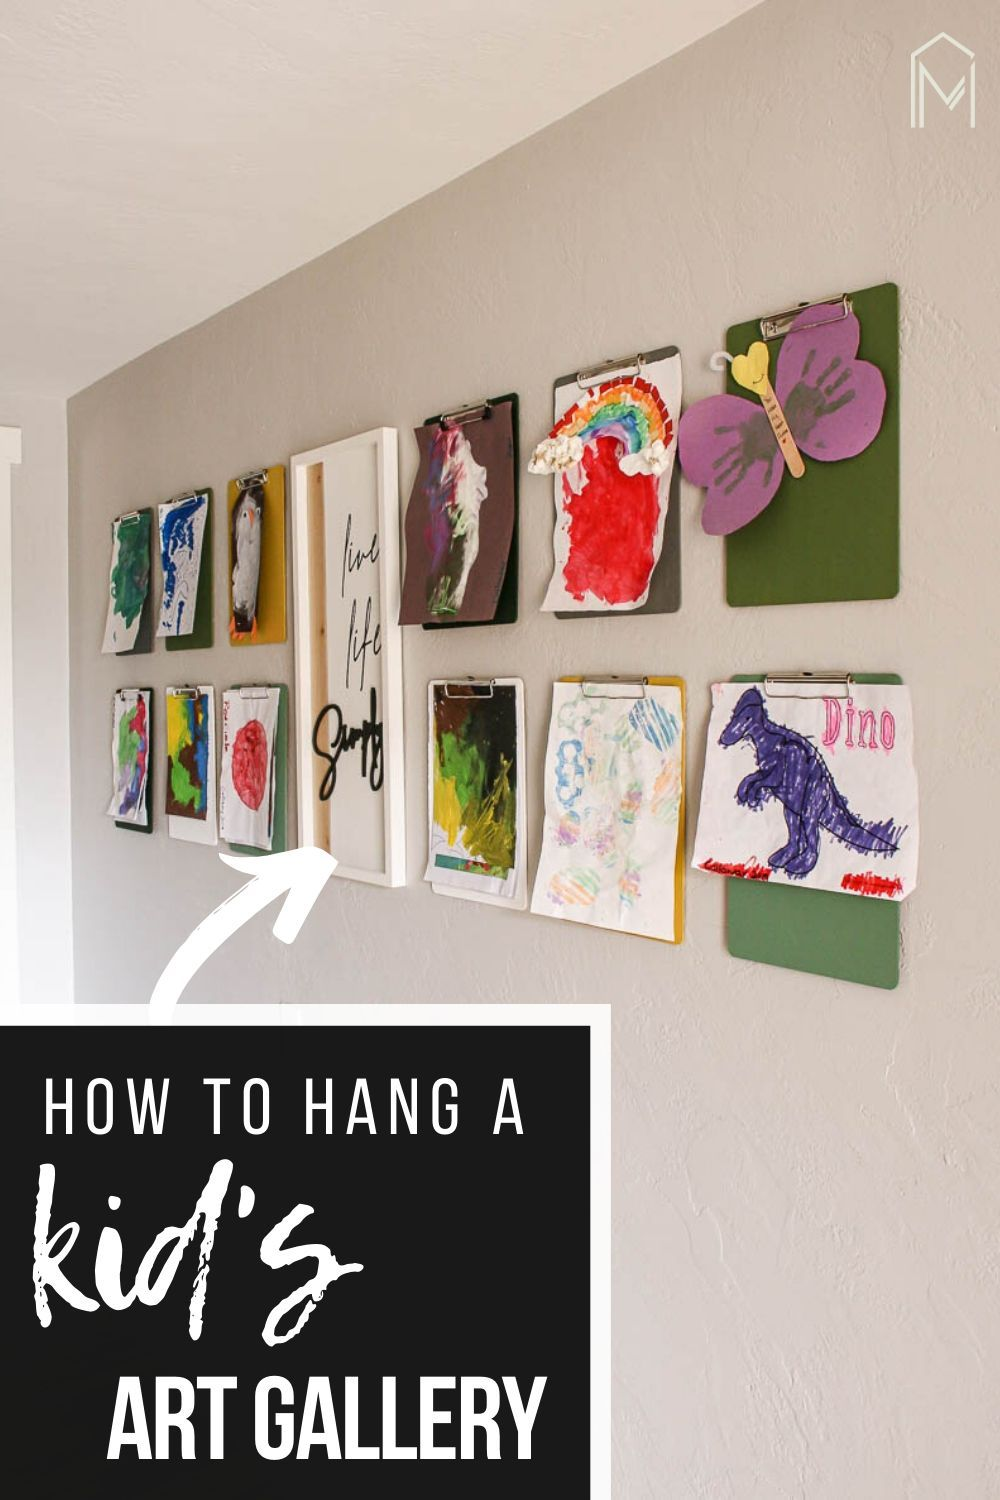 Clipboards On Wall For Hanging Kid S Art Making Manzanita In 2020 Hanging Kids Art Kids Art Galleries Diy Dollar Store Crafts